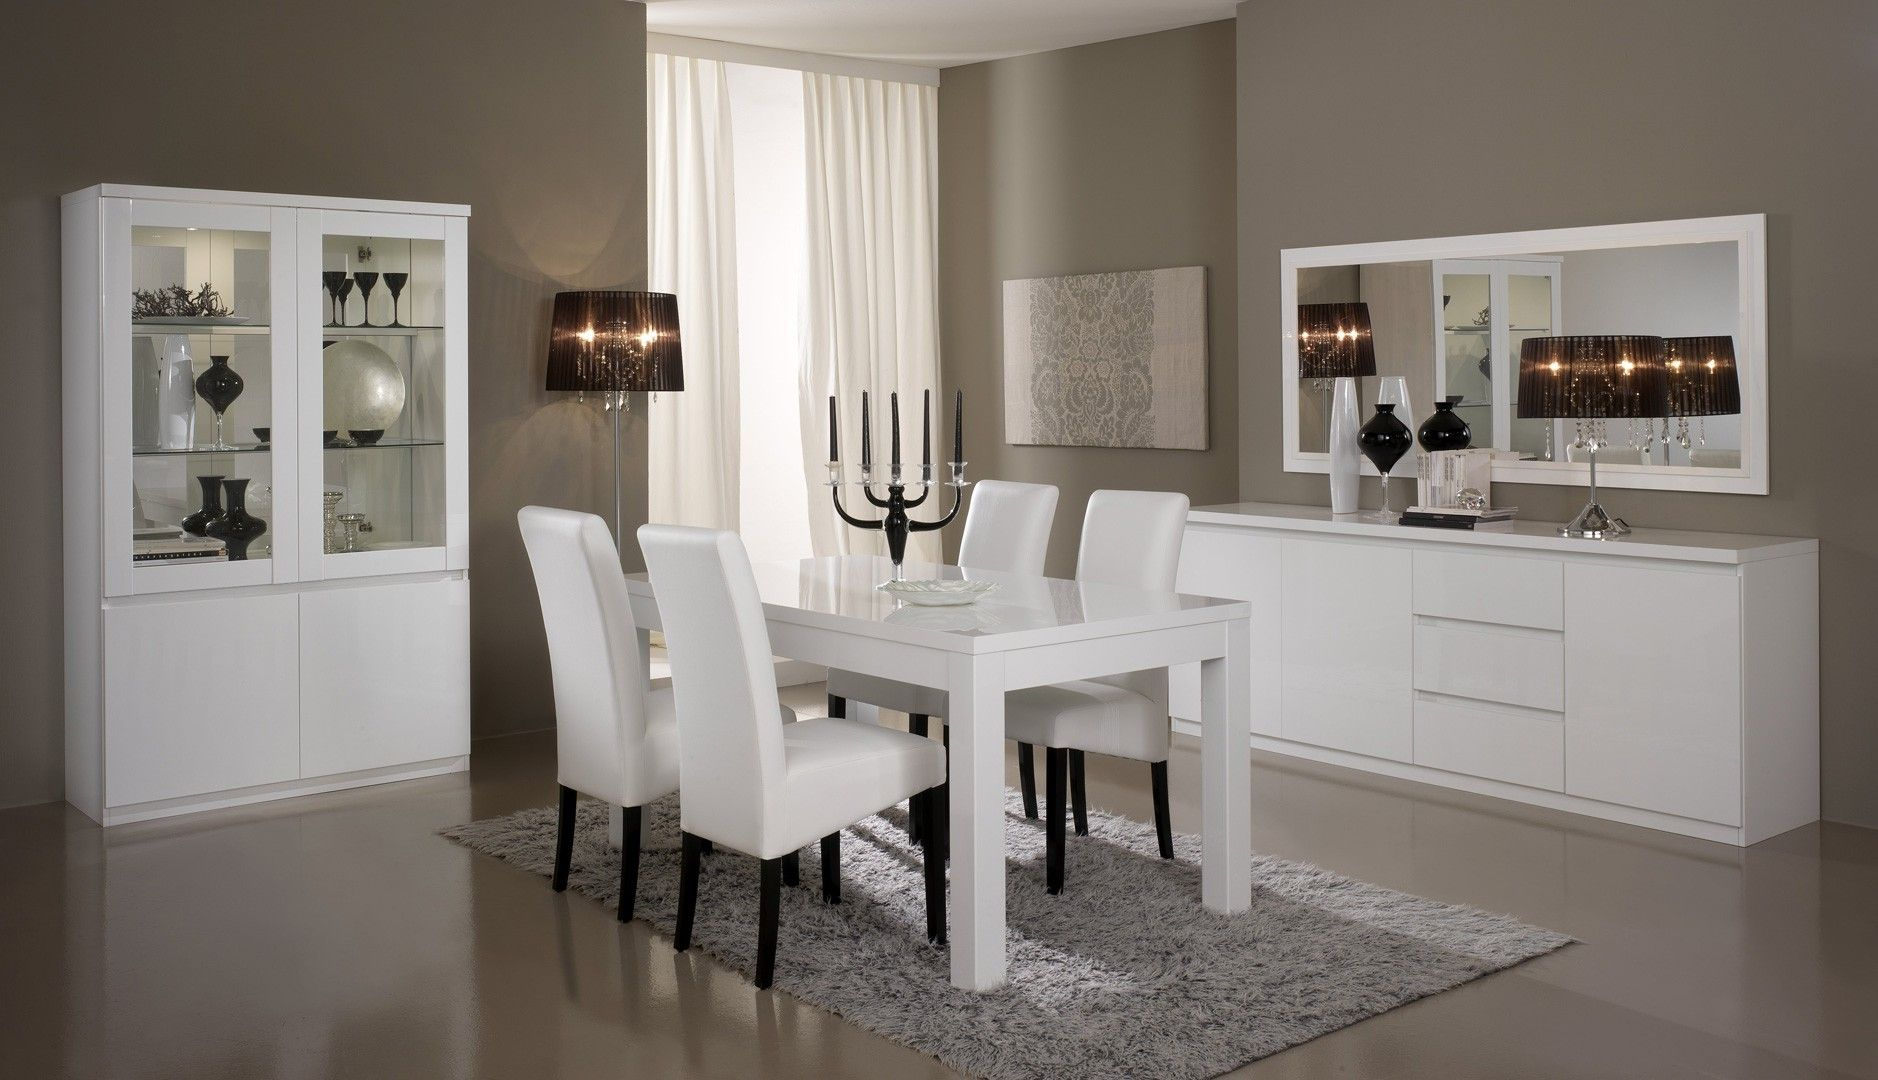 Salle A Manger Complete Design Laquee Blanche Cristal Matelpro Salle A Manger Complete Salle A Manger Blanche Meuble Salle A Manger